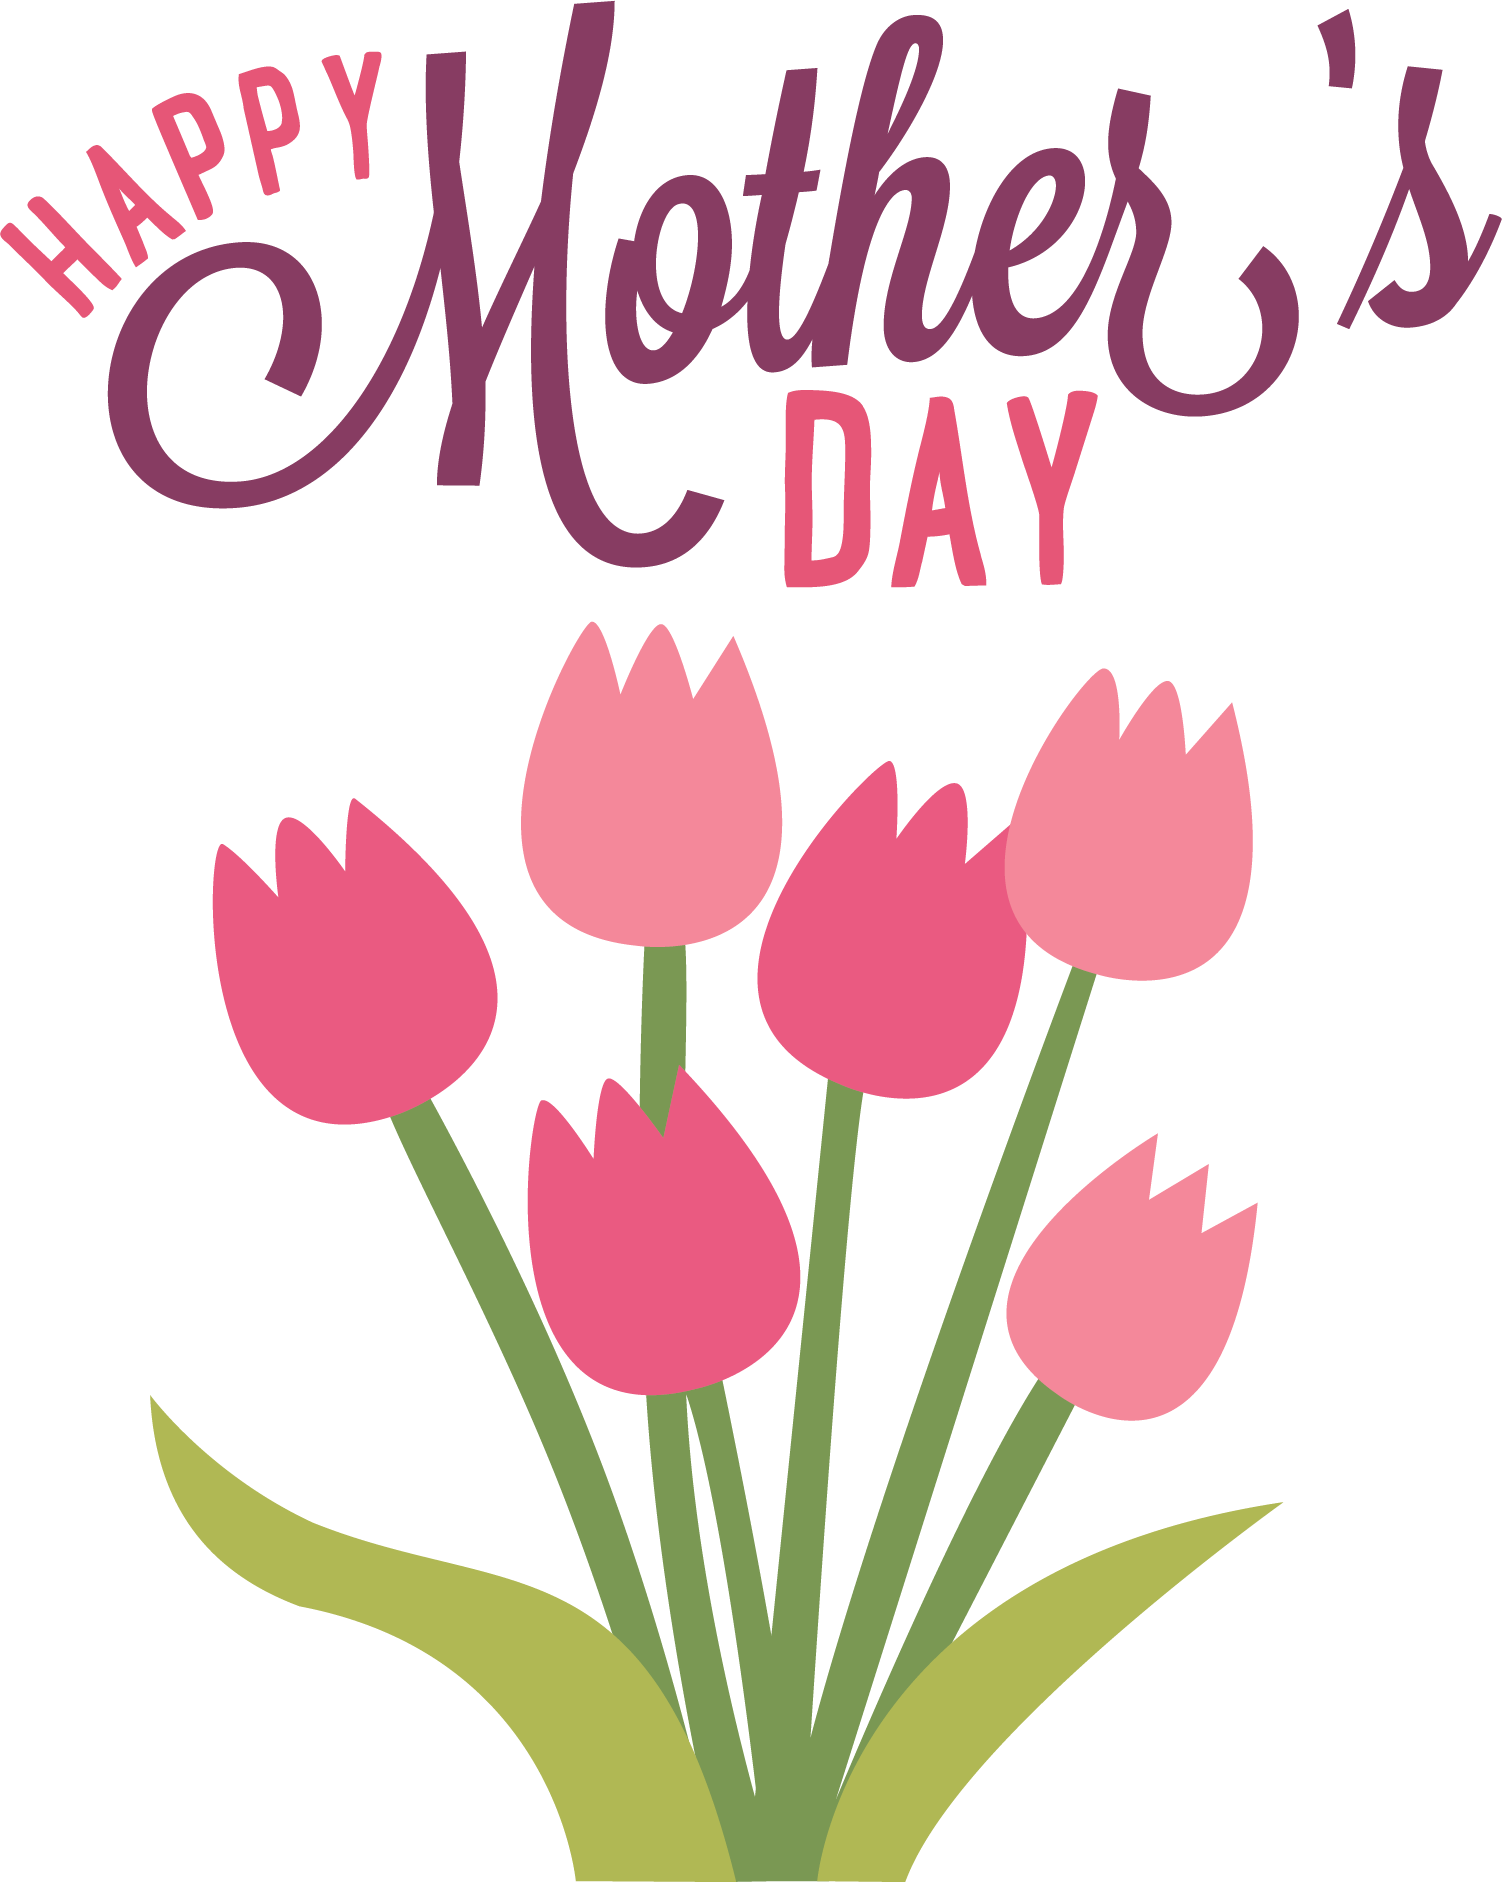 2016 clipart happy mothers day. Flowers transparent png stickpng